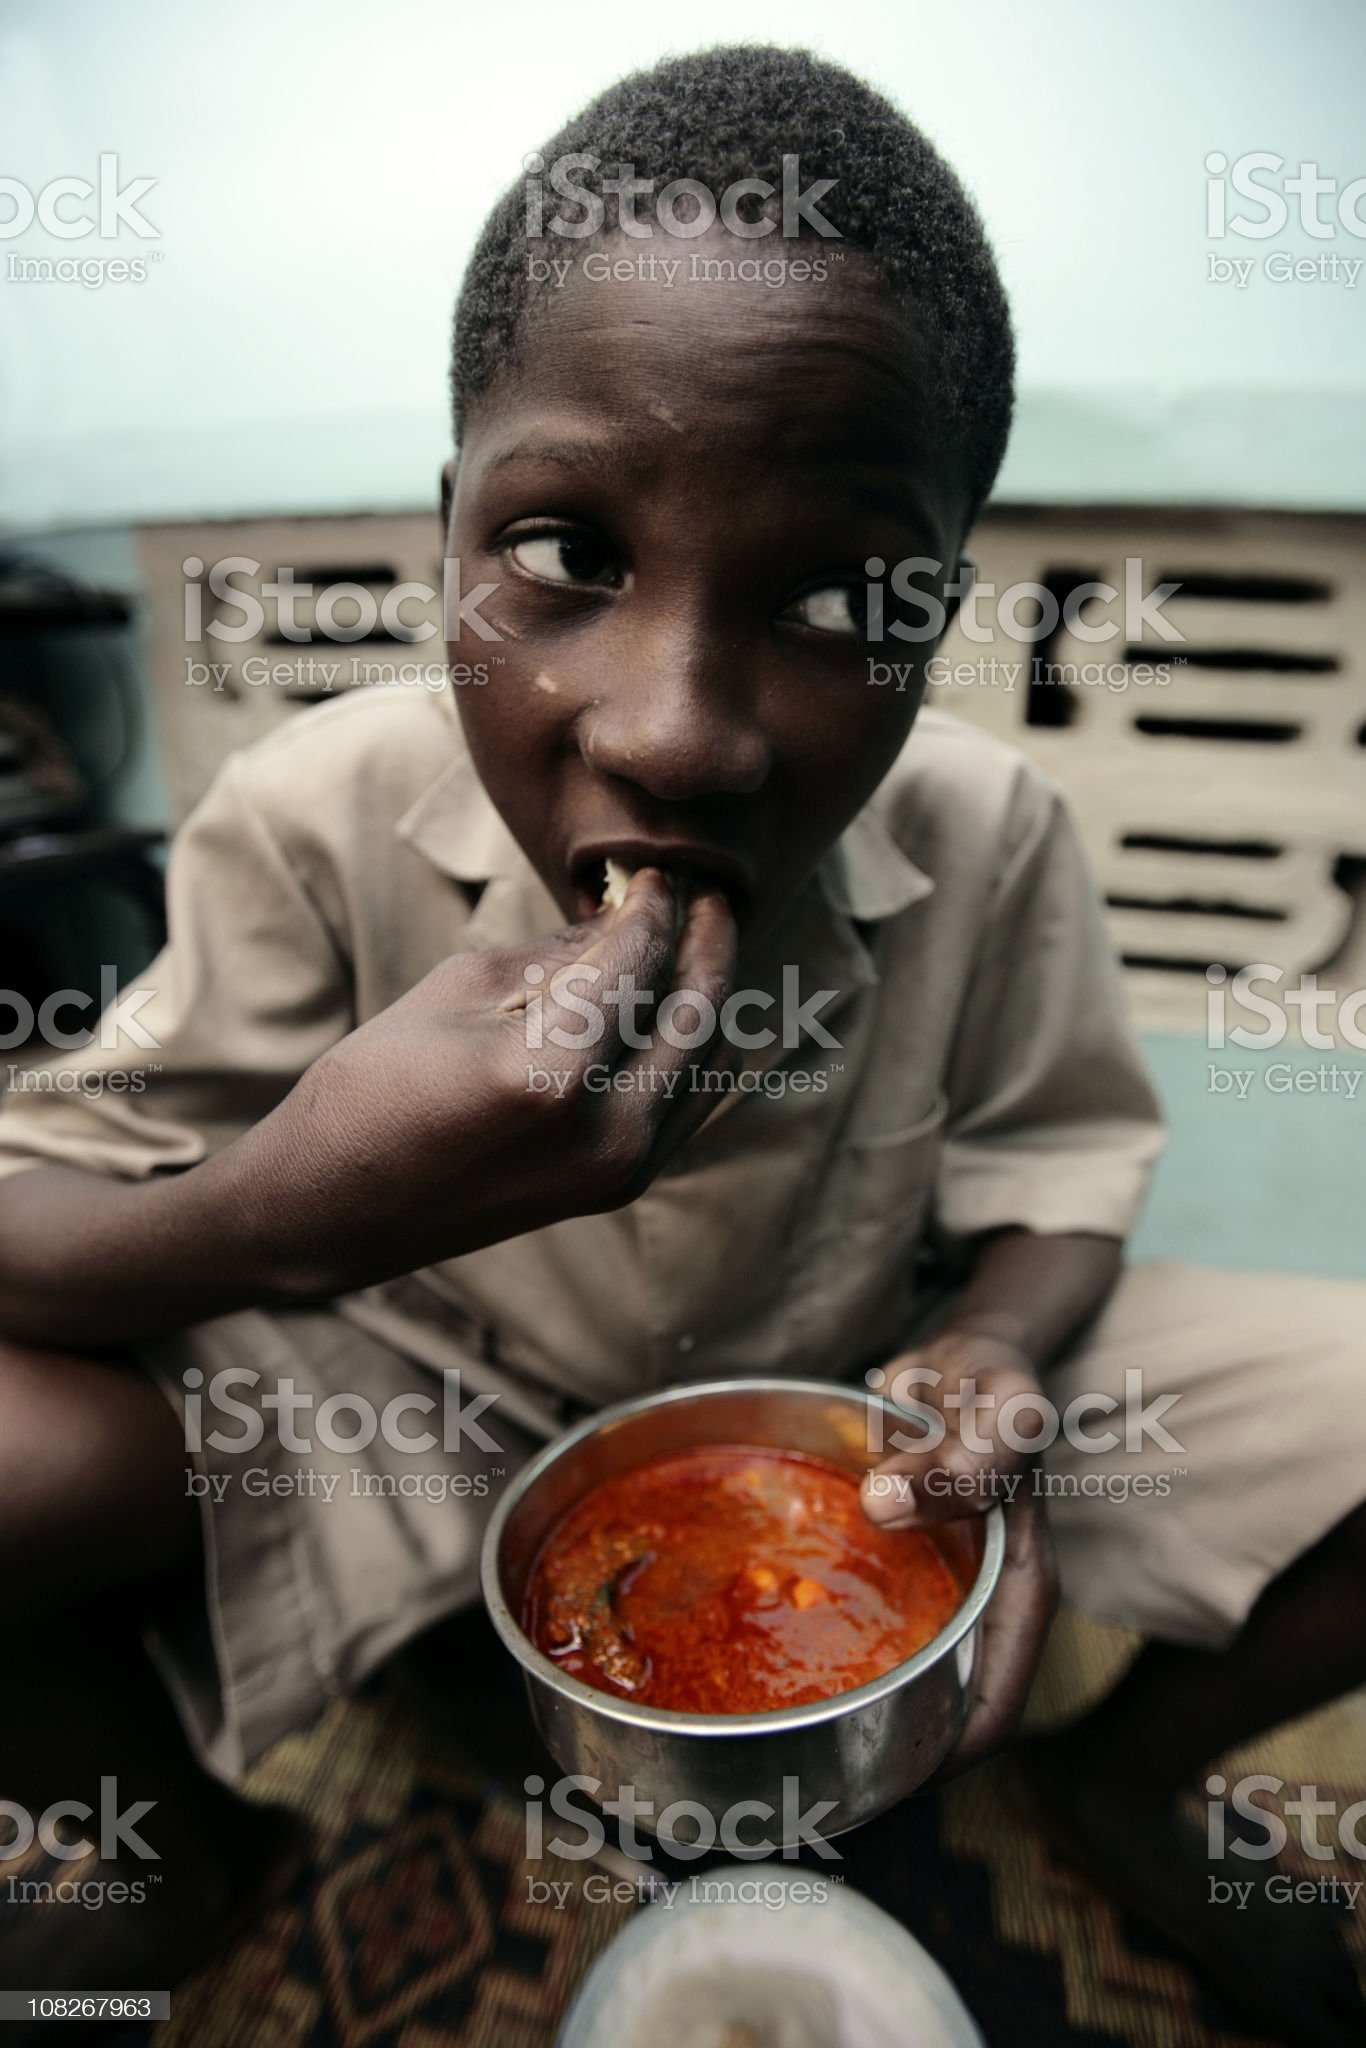 Small African Boy Eating Traditional Food royalty-free stock photo